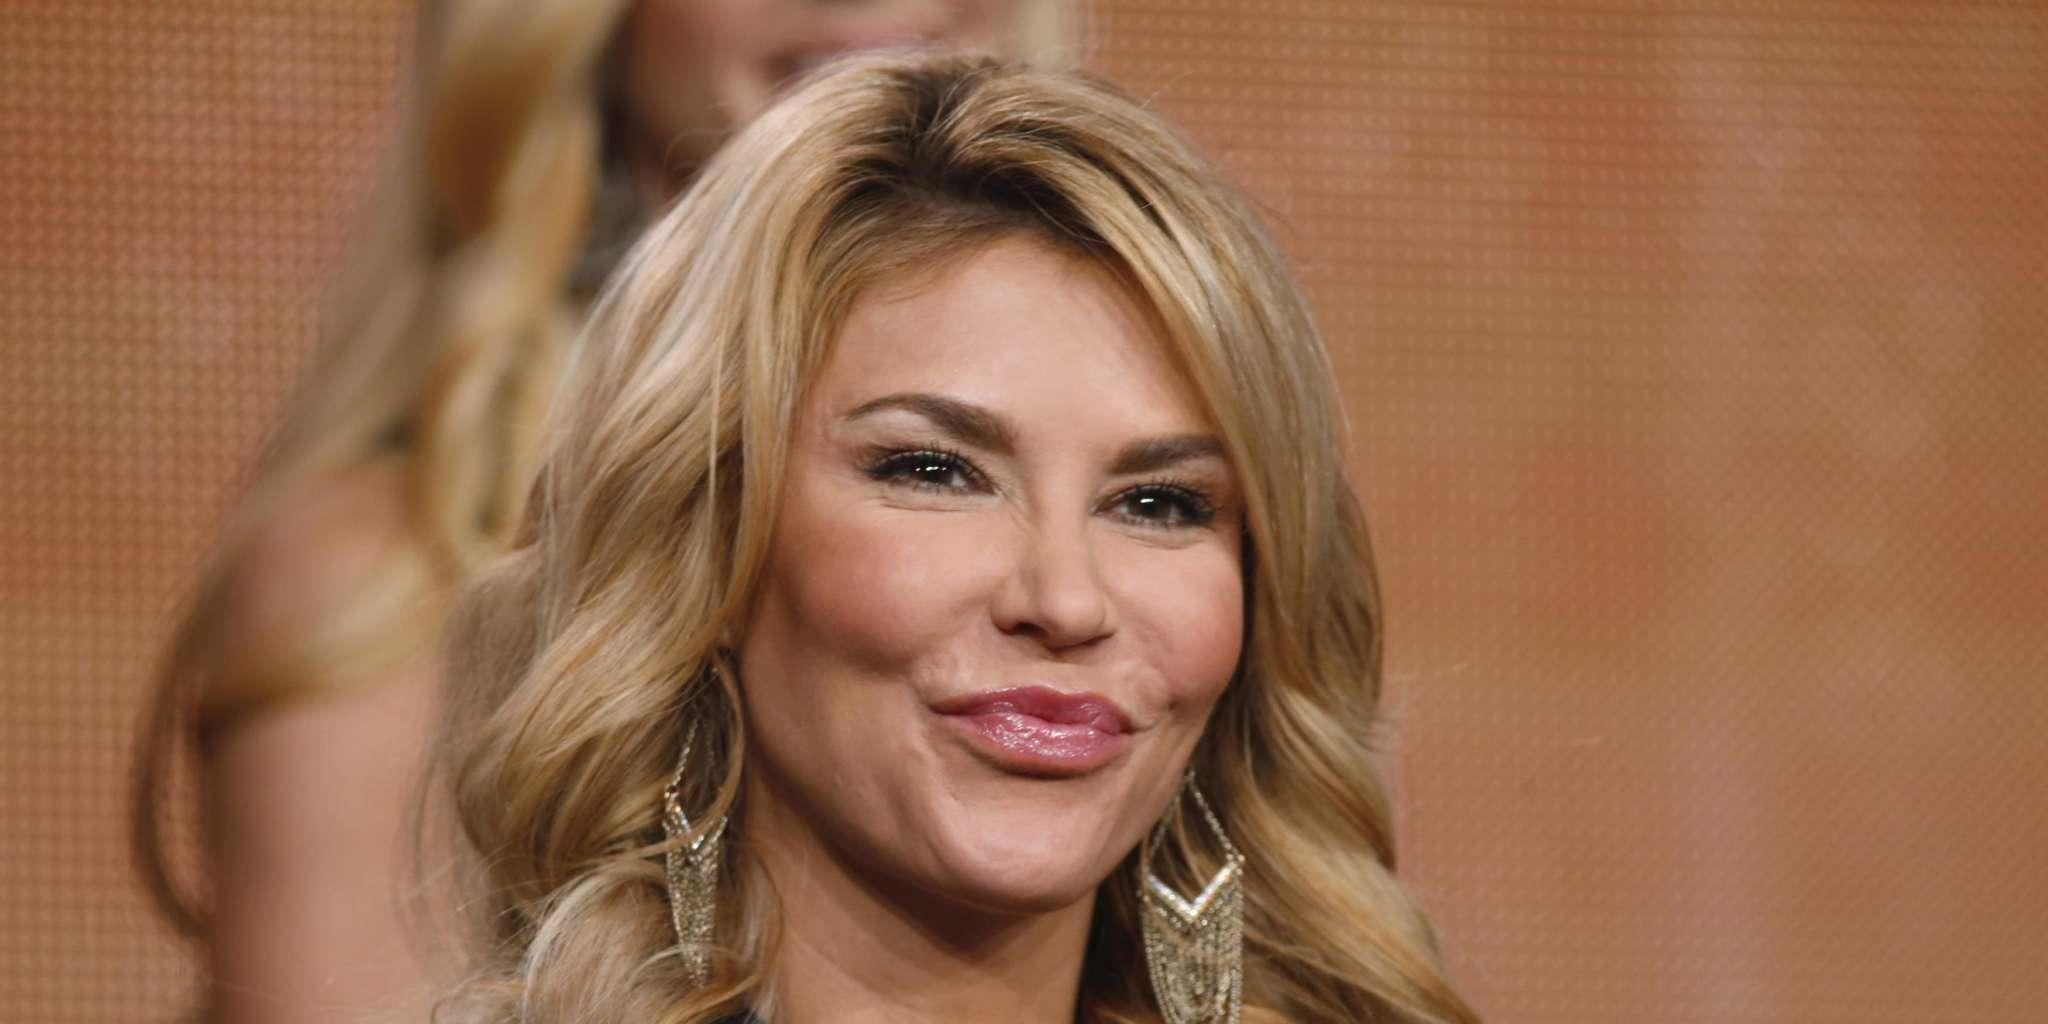 Brandi Glanville Hints That She's Coming Back To RHOBH? - Check Out The Cryptic Tweet That Has Fans Guessing!